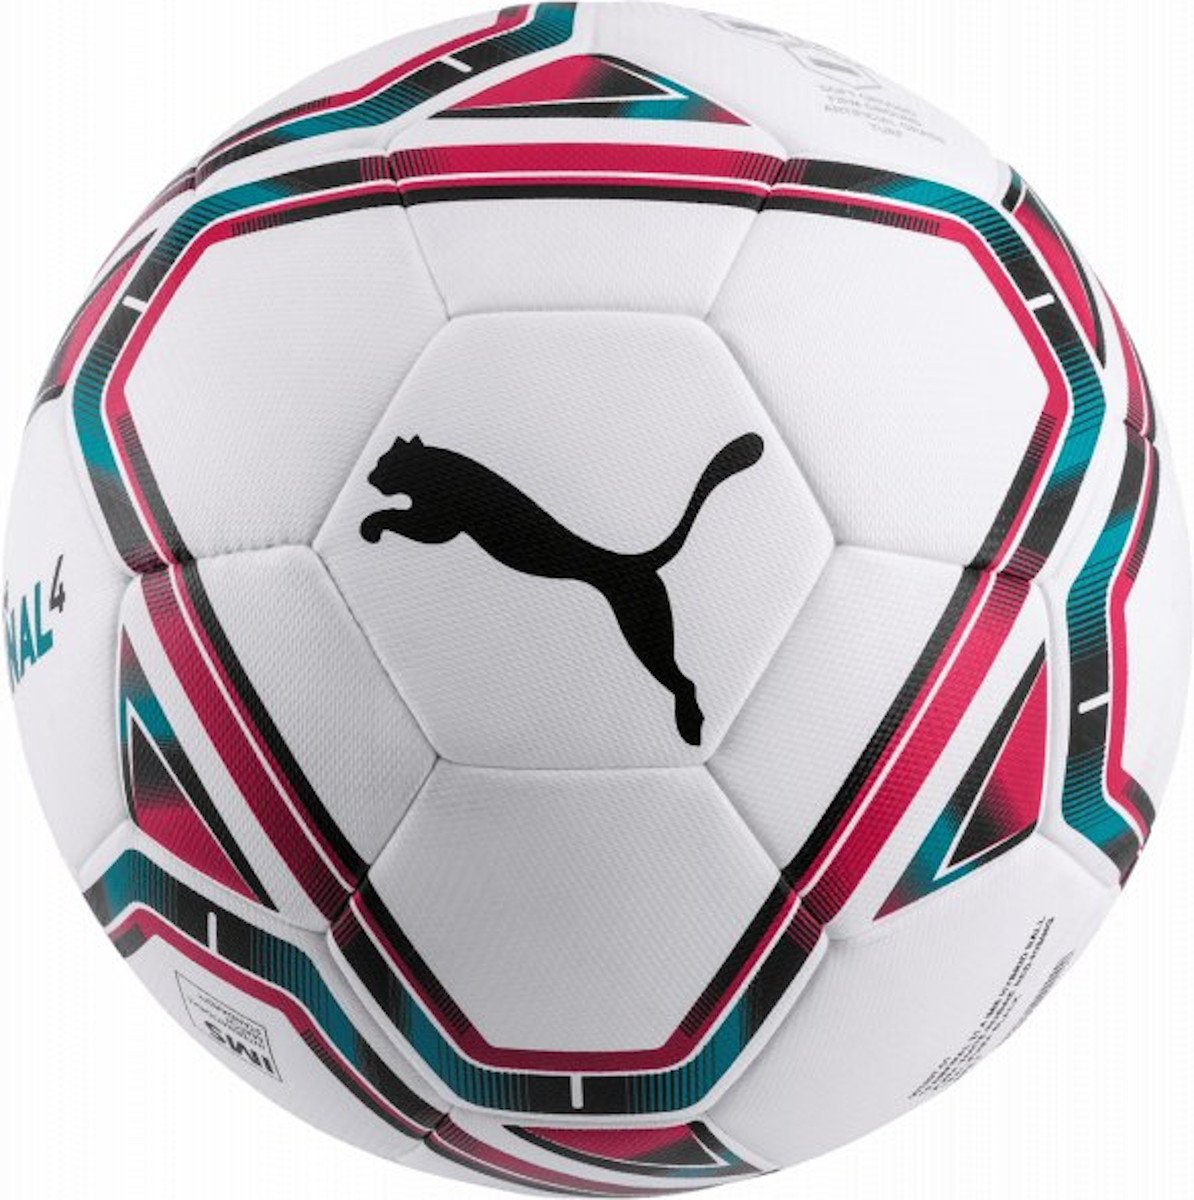 Ball Puma teamFINAL 21.4. IMS Hybrid Ball